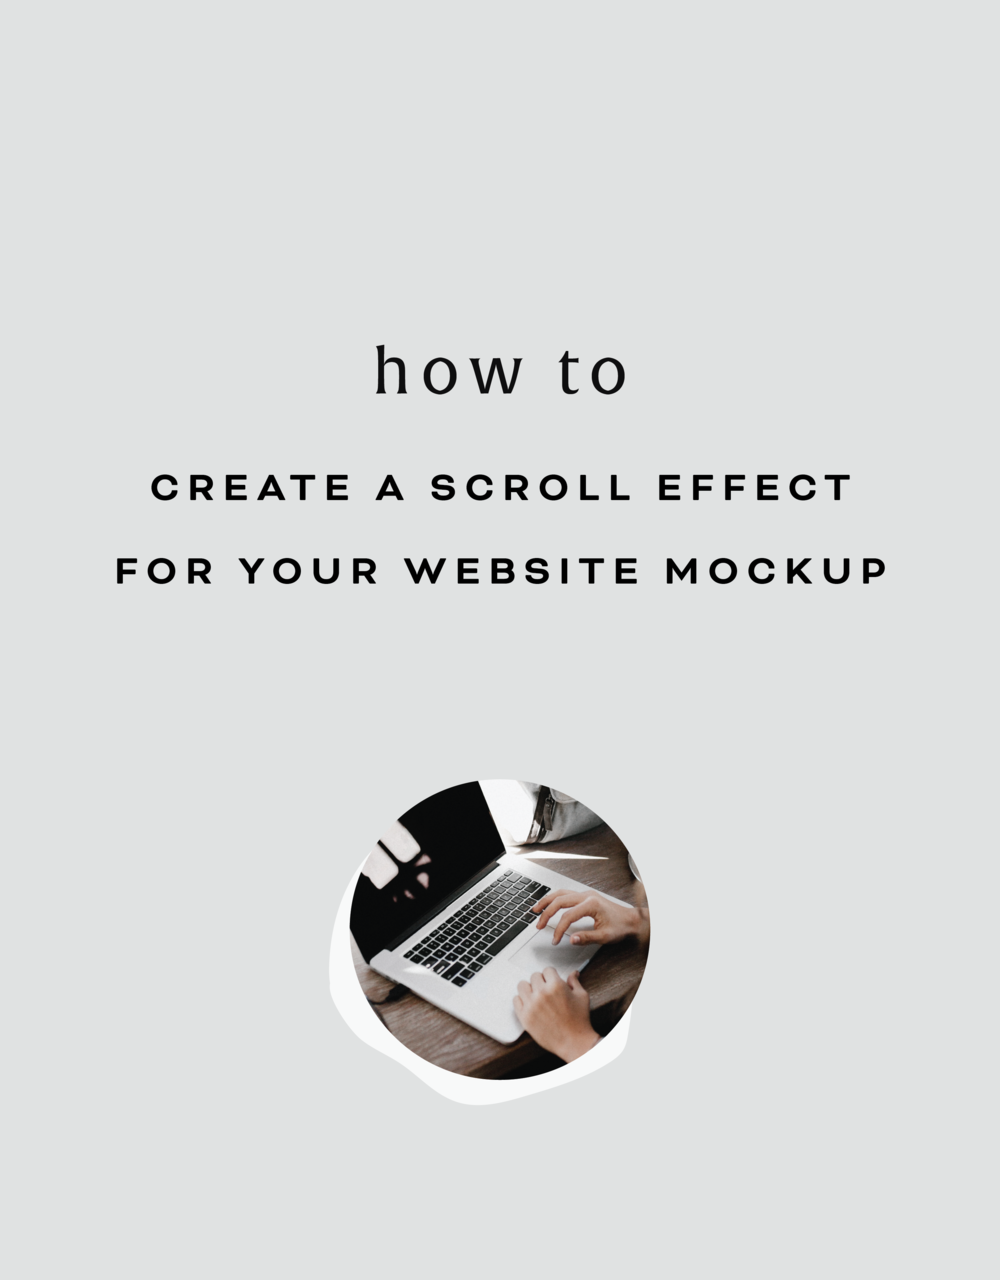 How to create a scroll effect for your website mockup june mango how to create a scroll effect for your website mockup june mango design boutique baditri Images